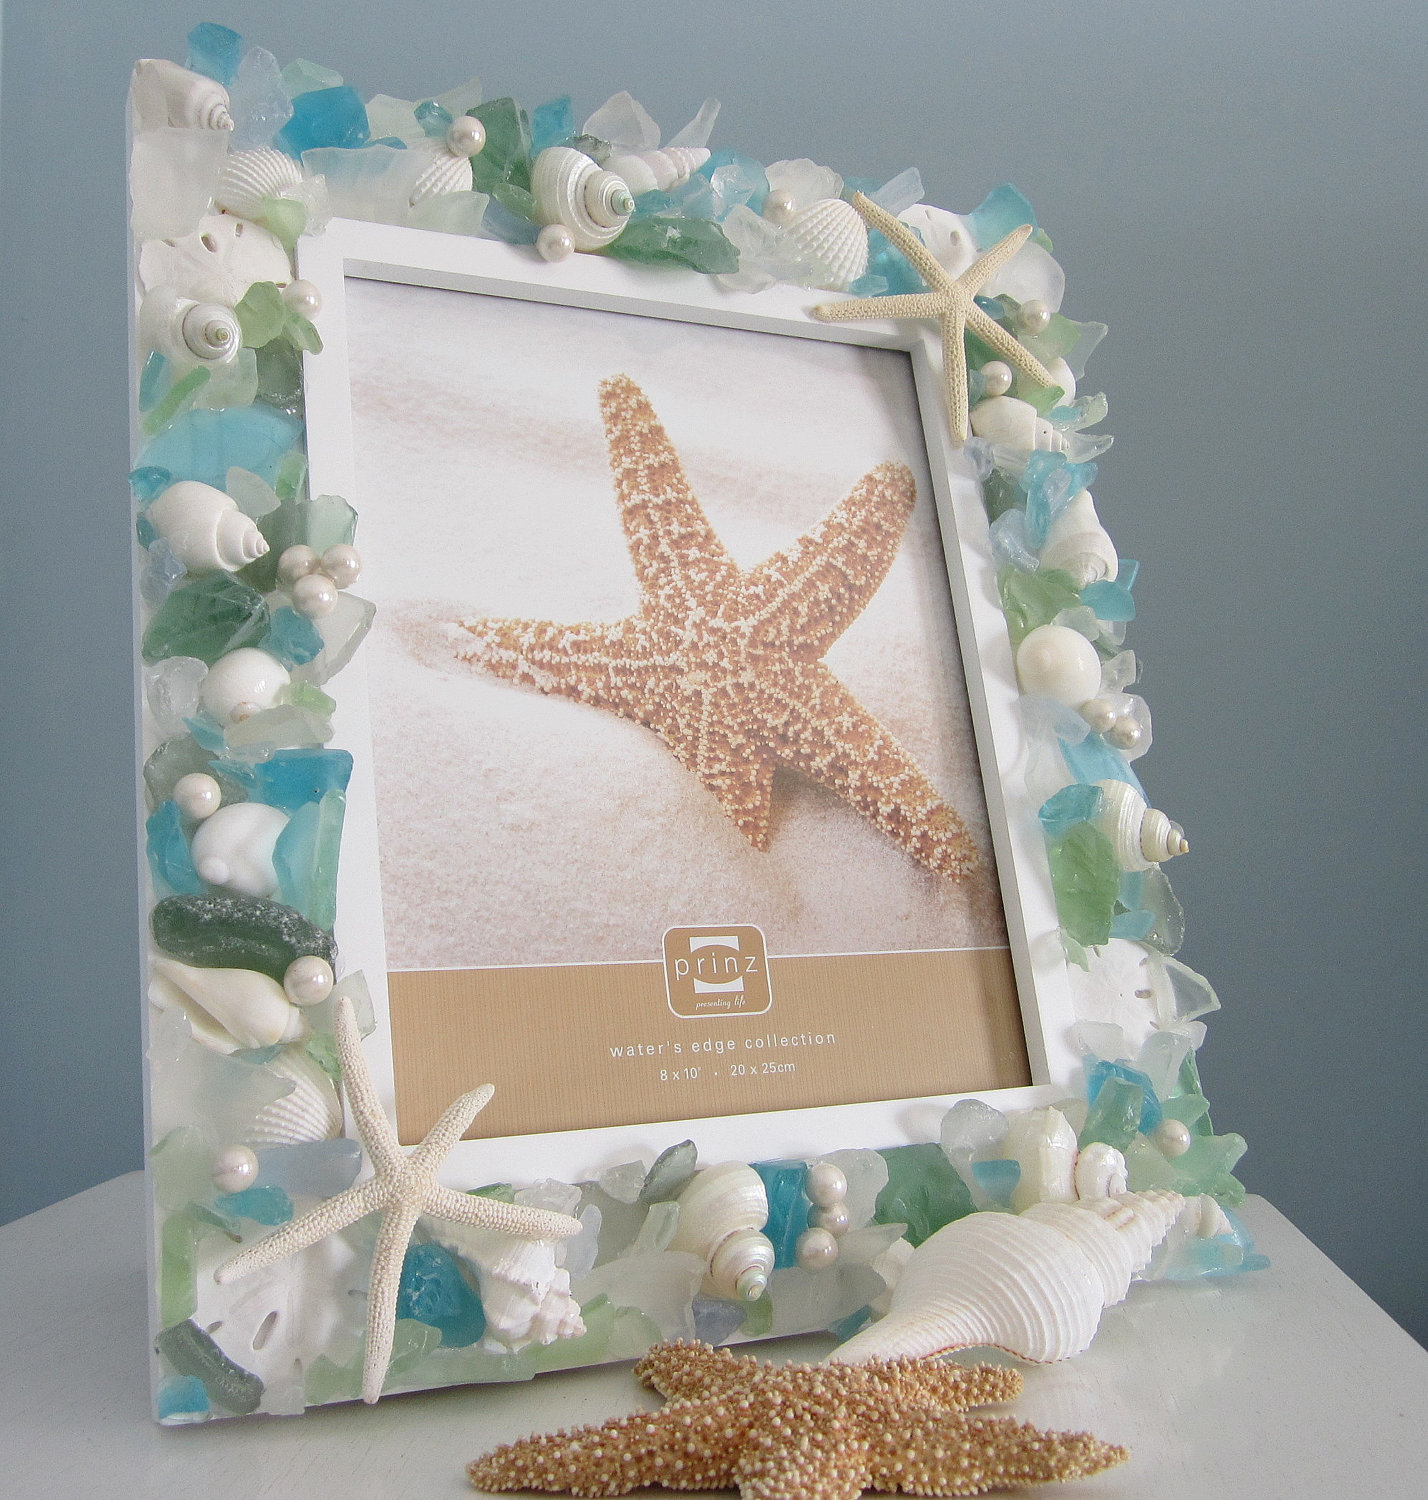 shell frame beach decor nautical seashell frame w pastel sea glass starfish 8x10